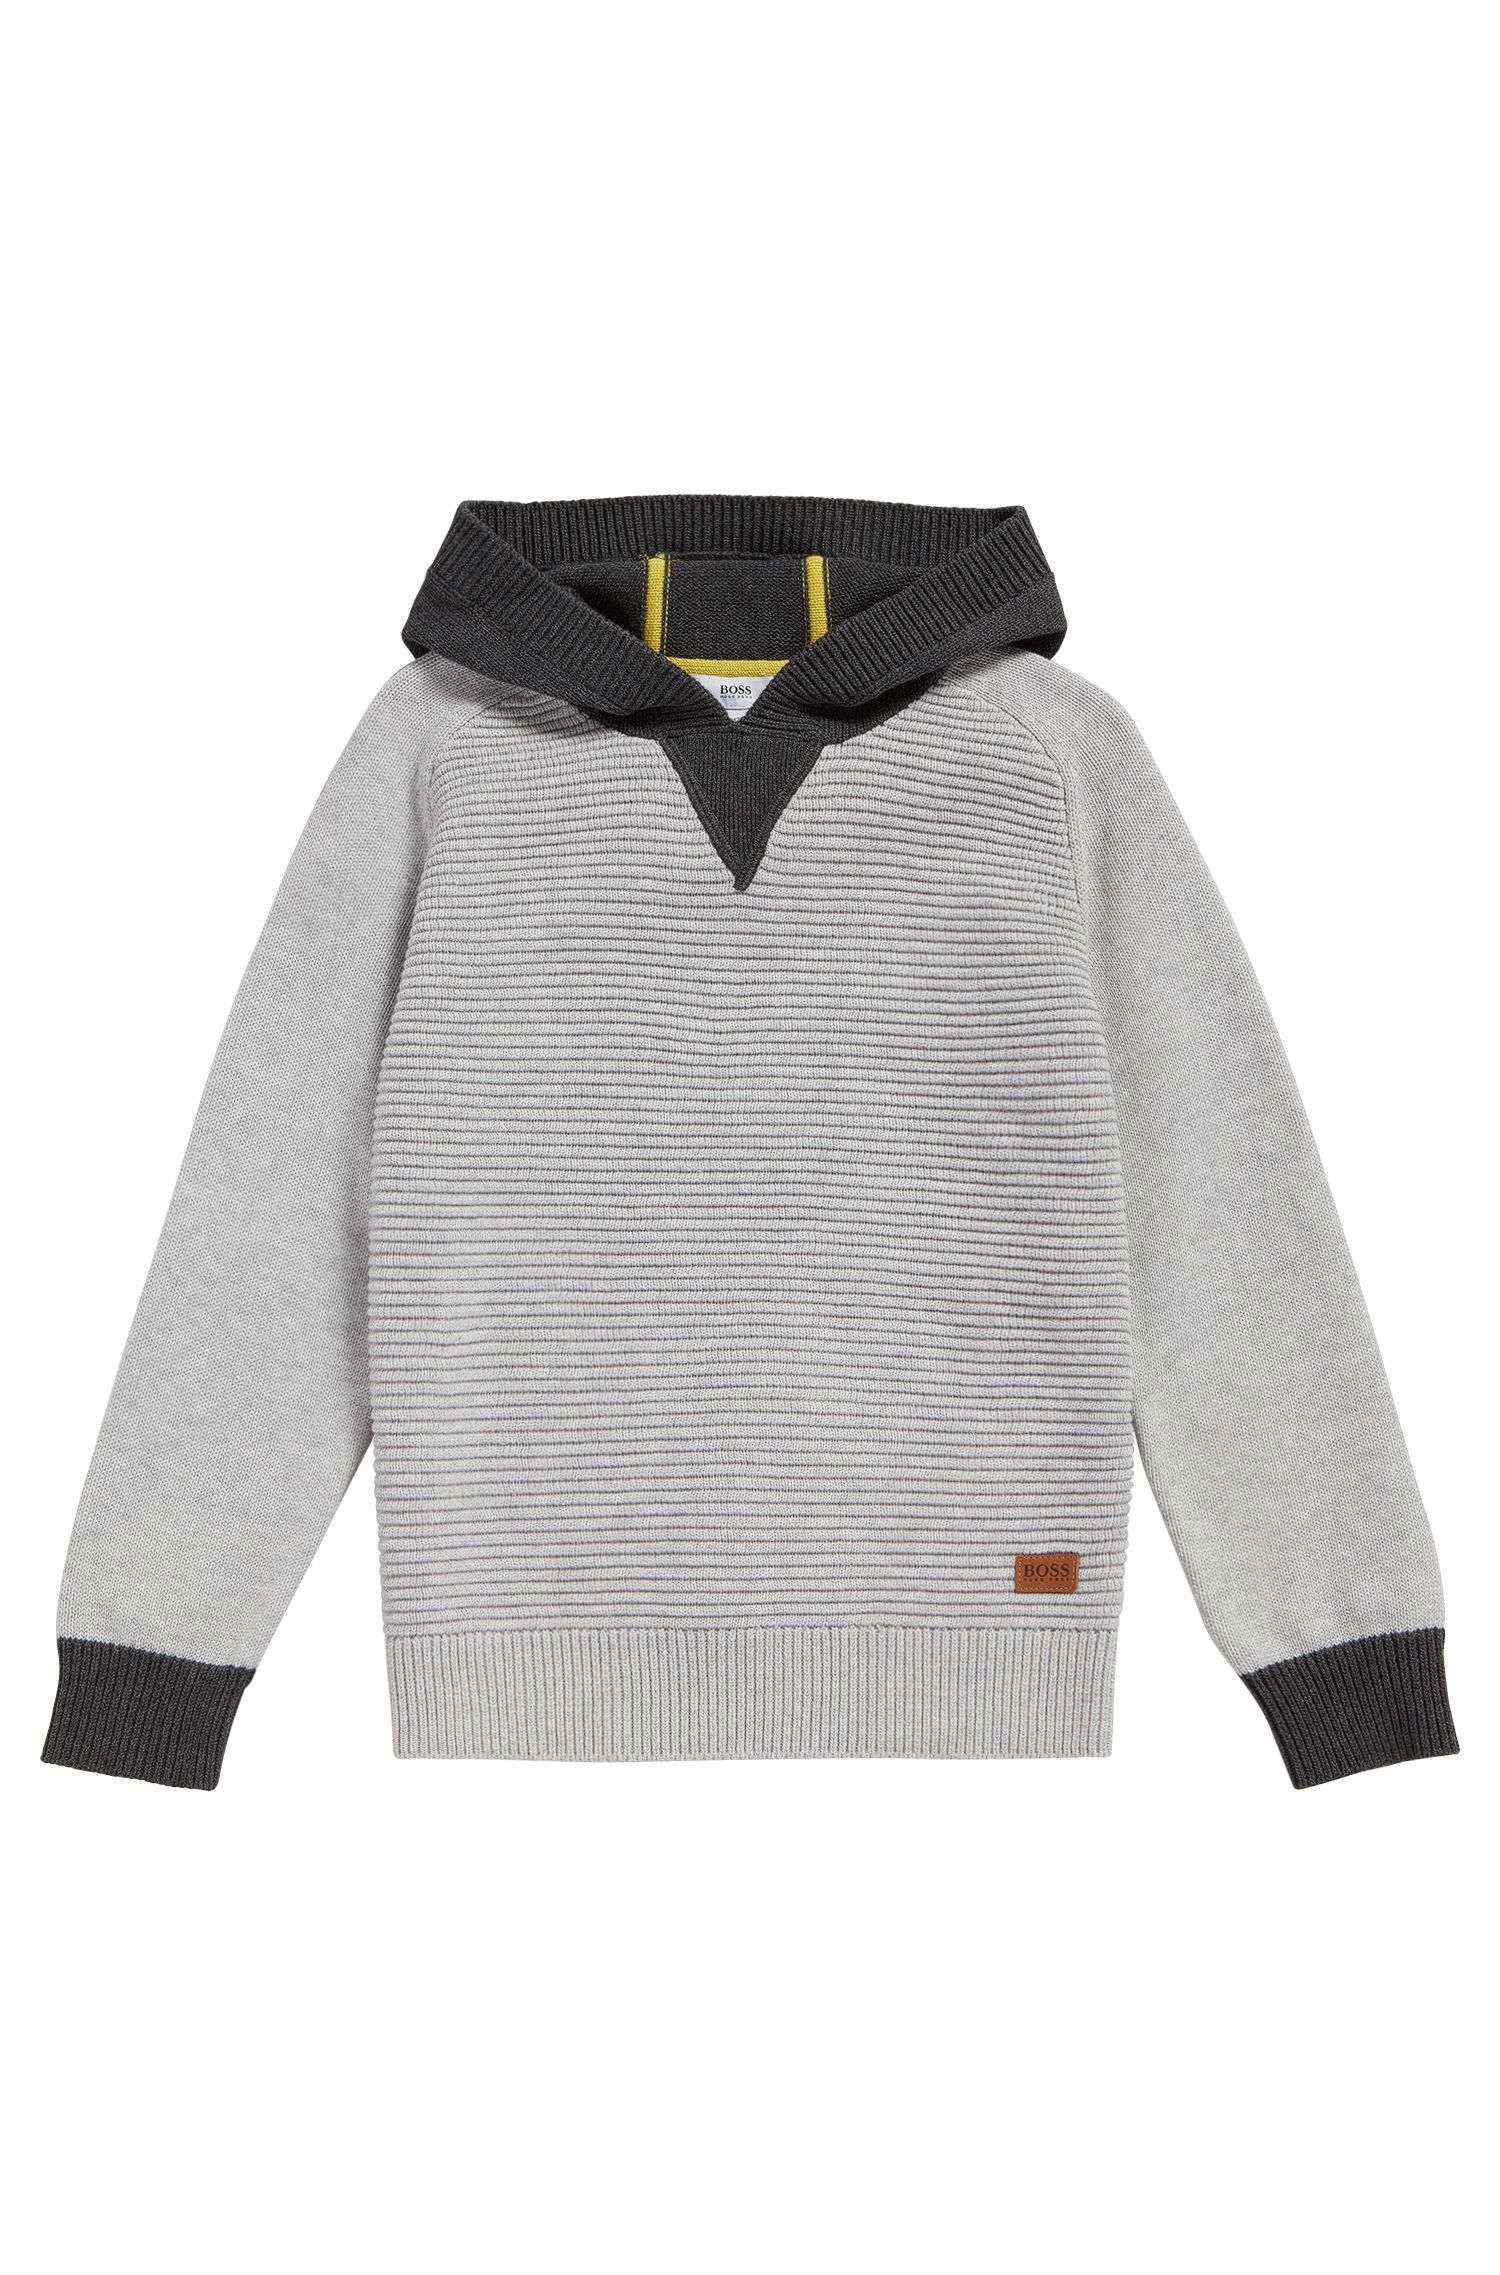 'J25A16' | Boys Cotton Hooded Sweater